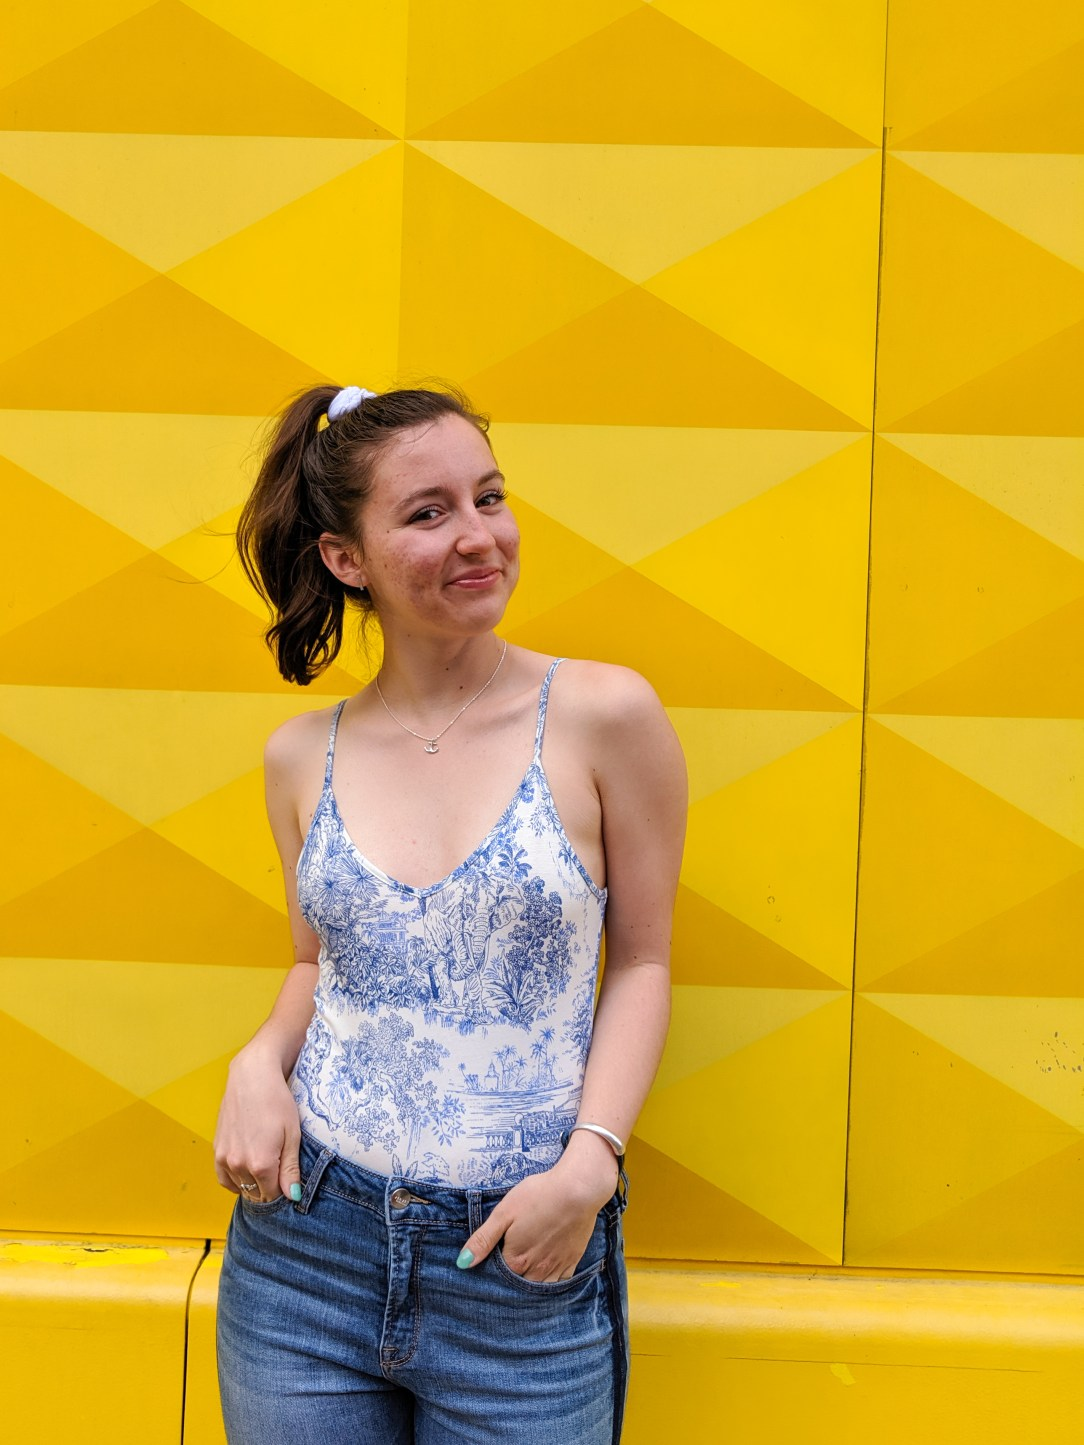 blue and white bodysuit, yellow background, blue and yellow